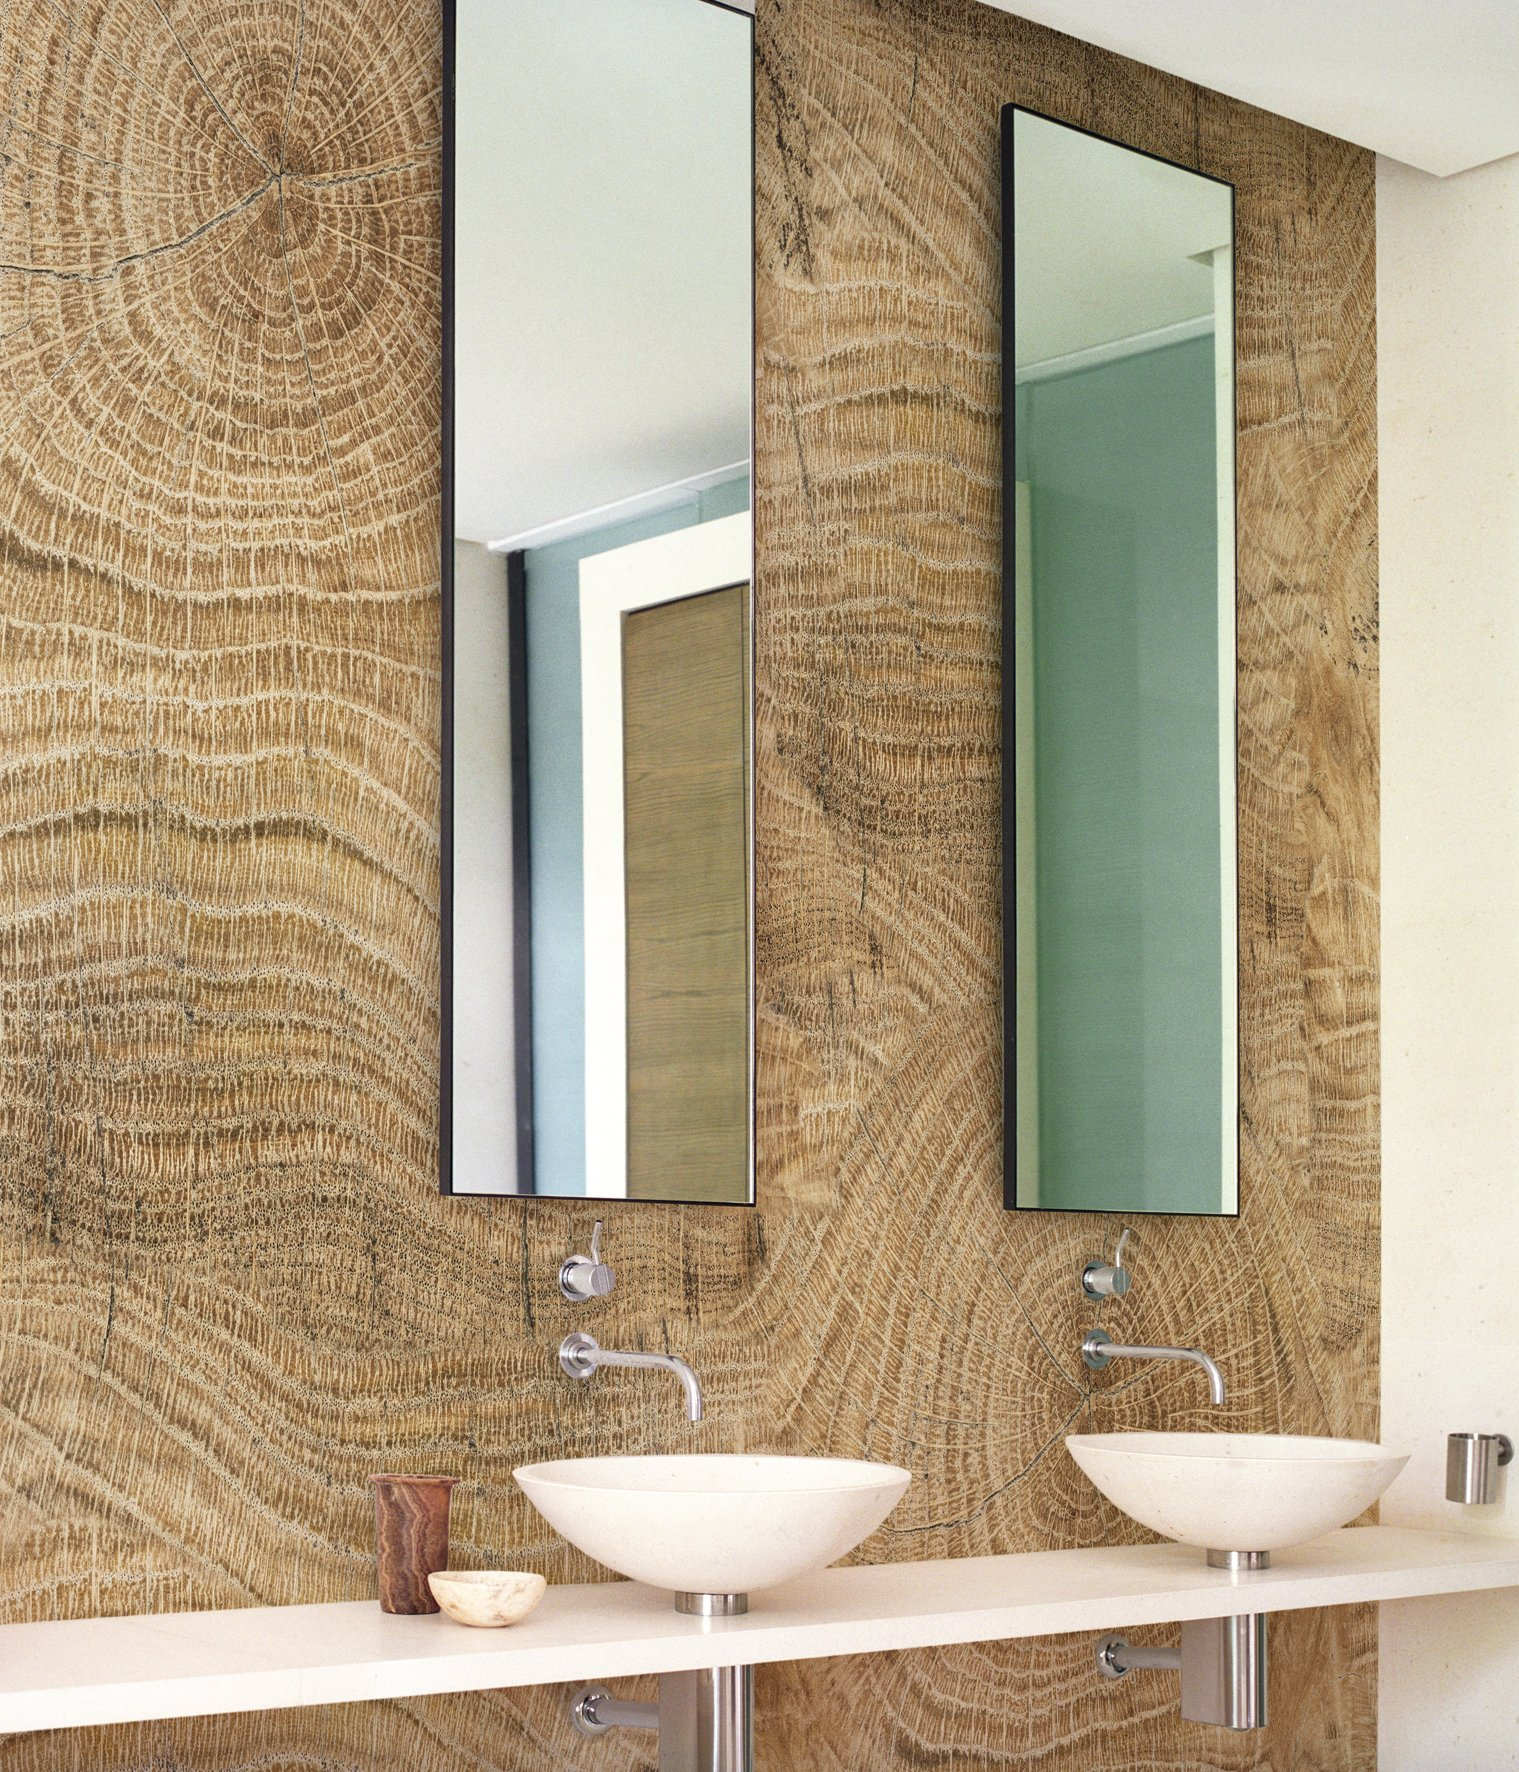 Fugenloses Bad Youtube Wood Effect Bathroom Wallpaper Life Lines By Wall Anddecò